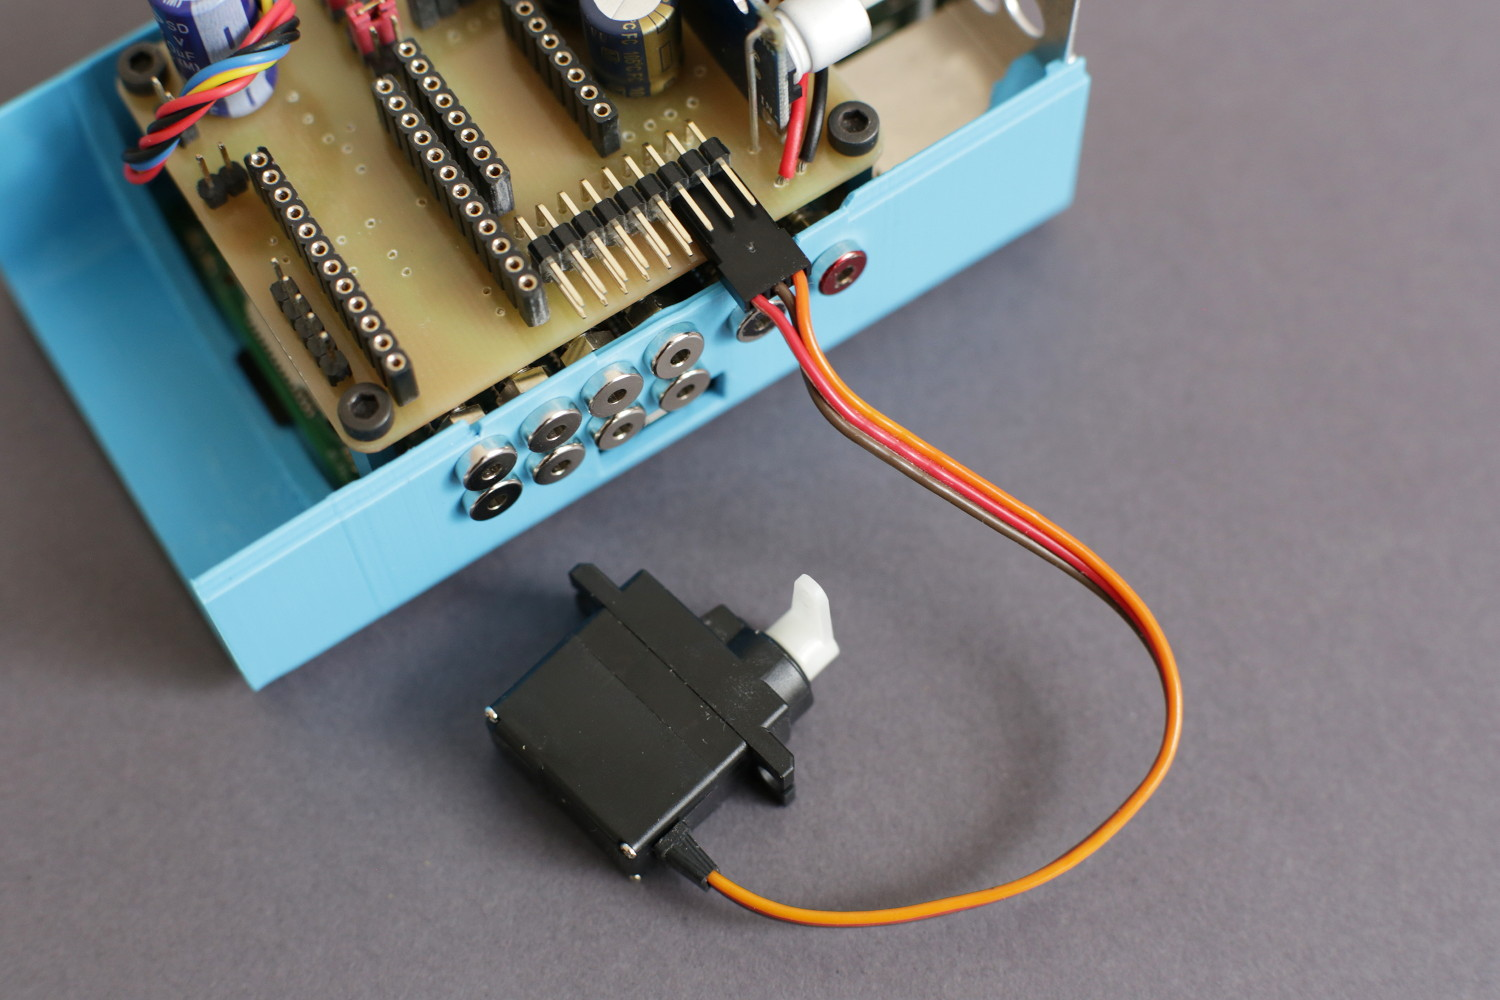 The shutter servo attached to the Monkeyprint DLP printer control board.